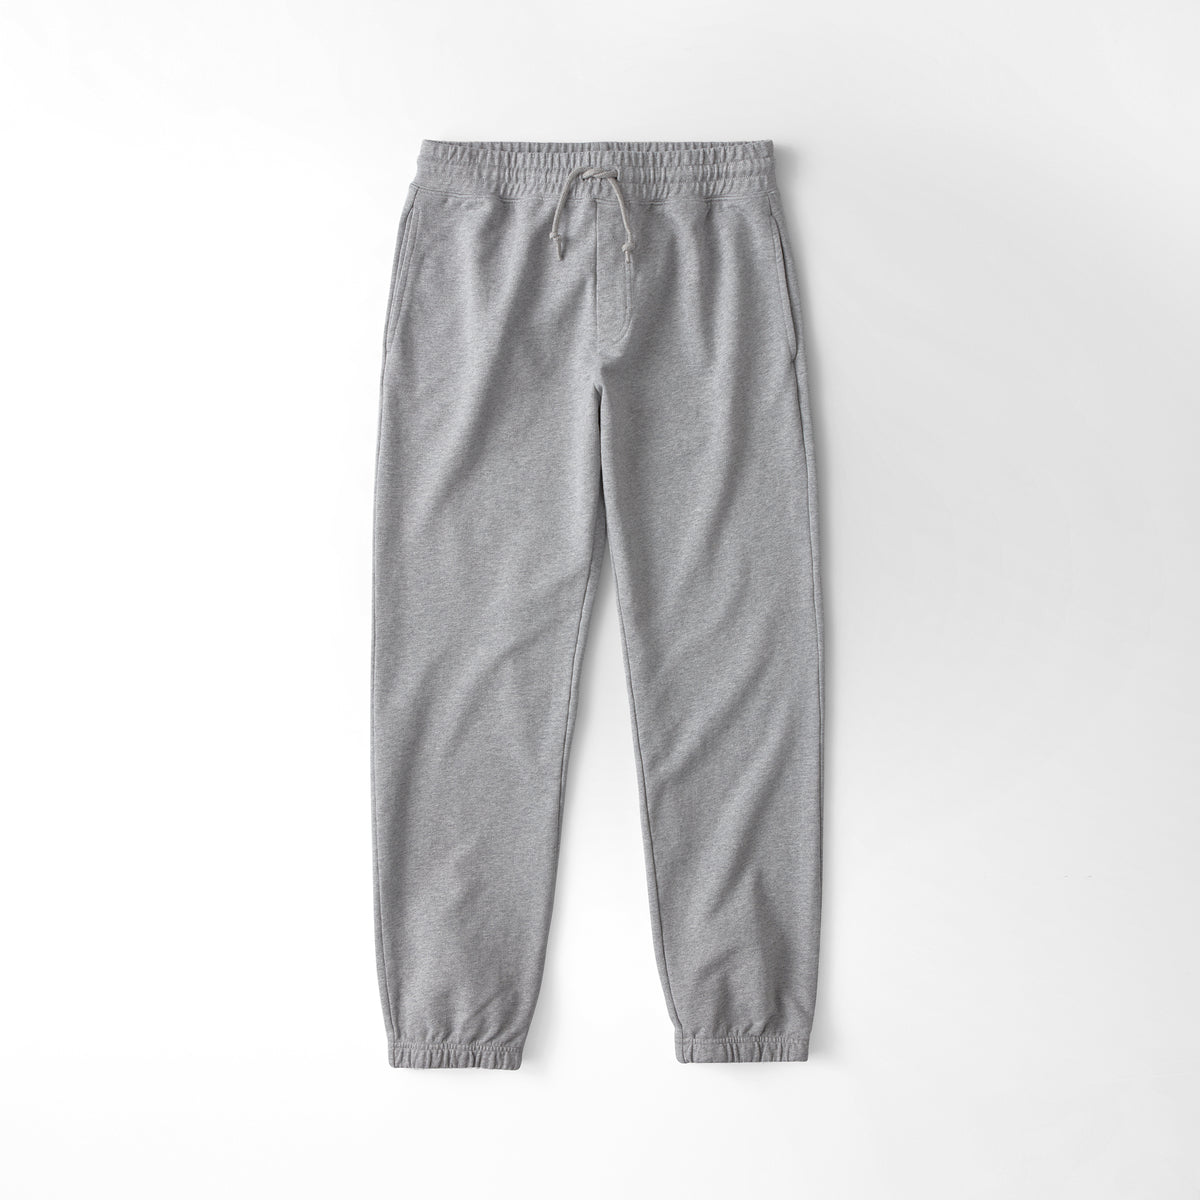 Sweatpant in Grey made from organic cotton - Alternate